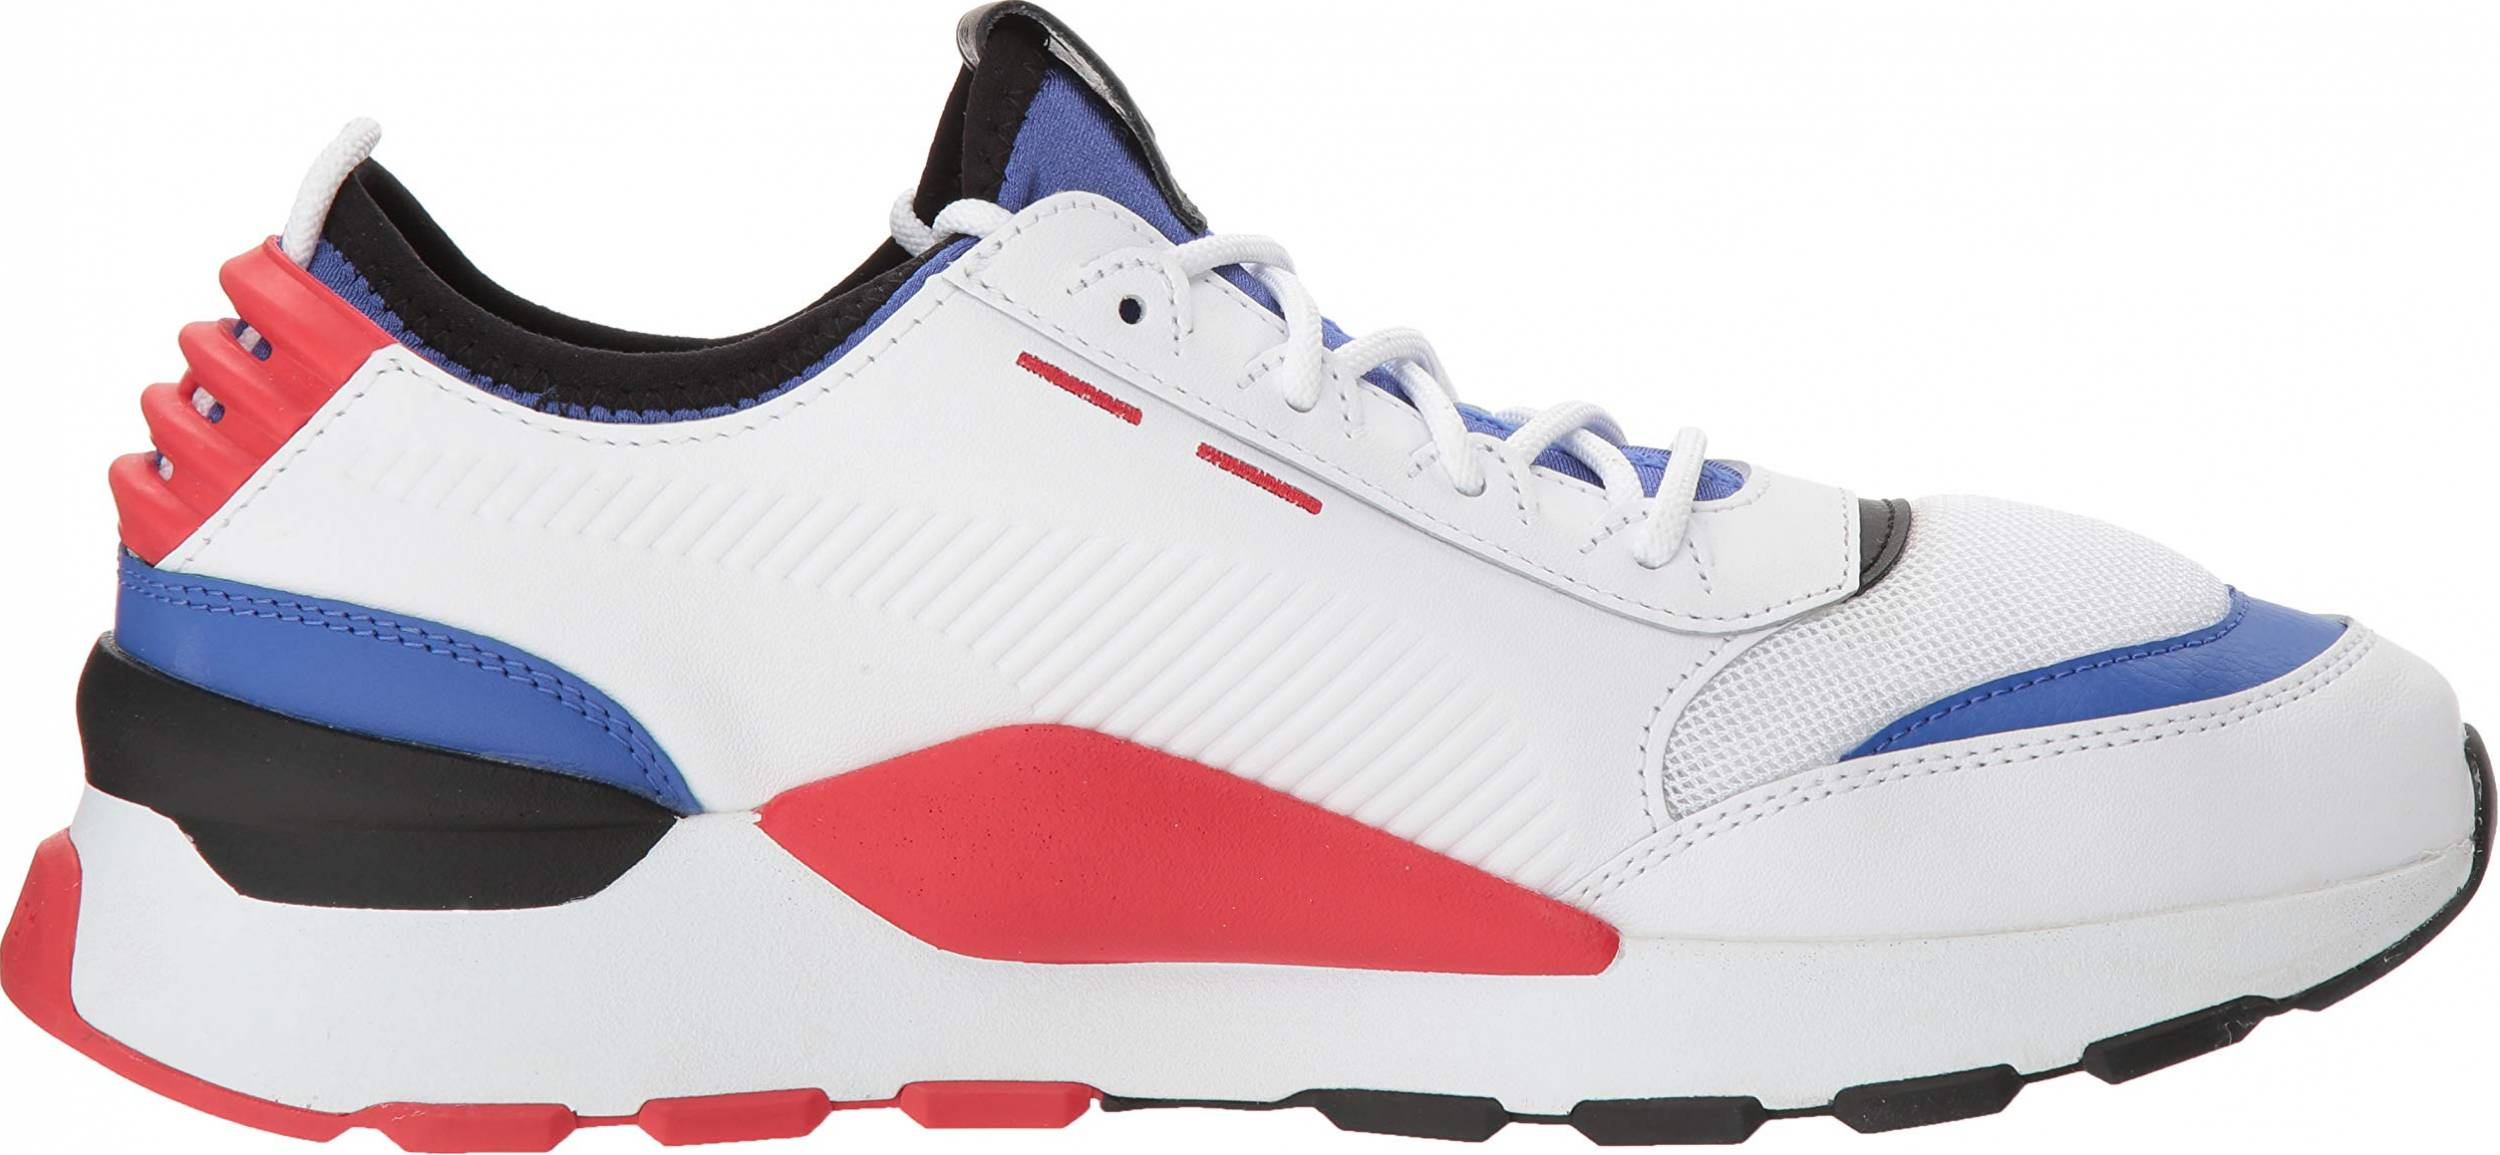 Only $30 + Review of Puma RS-0 Sound